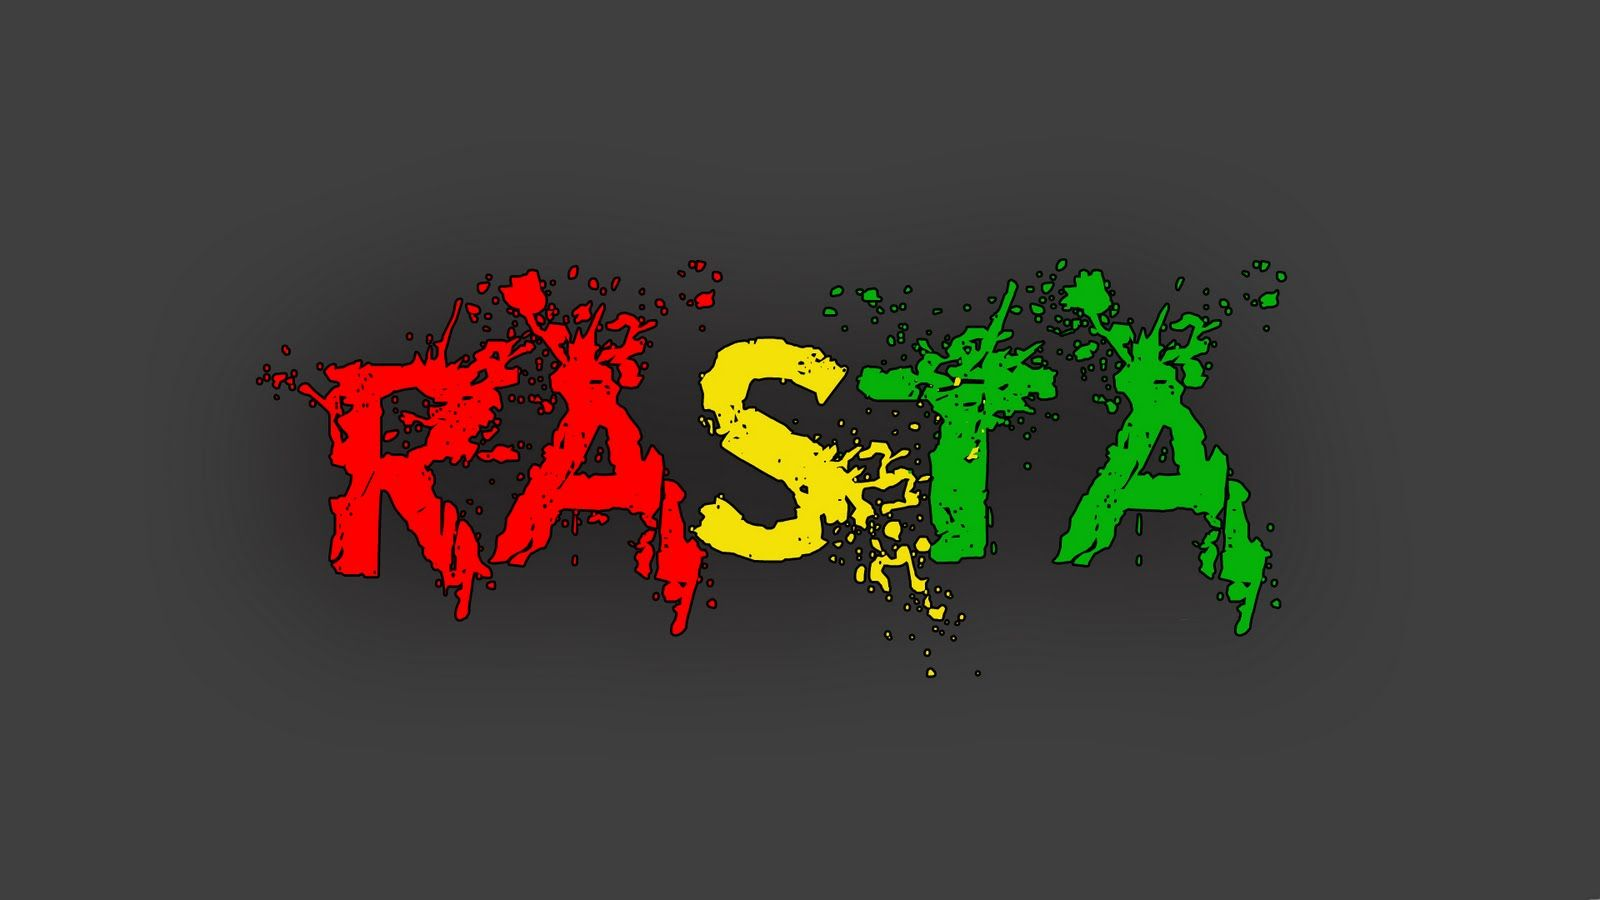 Rasta Love Quotes Google Image Result For Httpwww.wallsavewallpapers